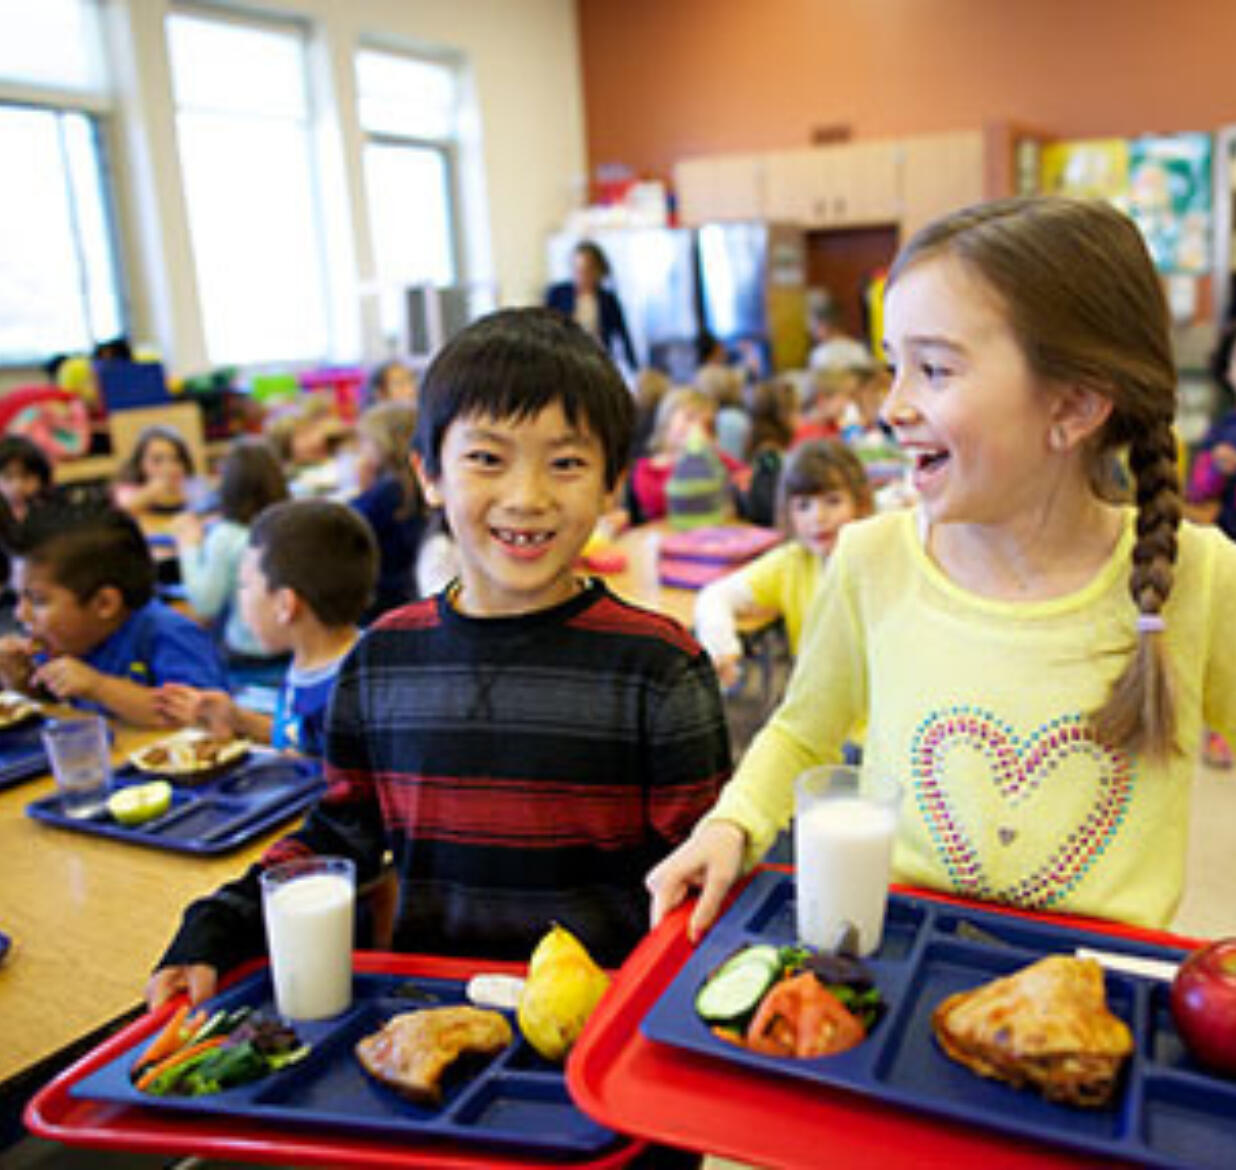 School Lunch: Opting Out is Not an Option